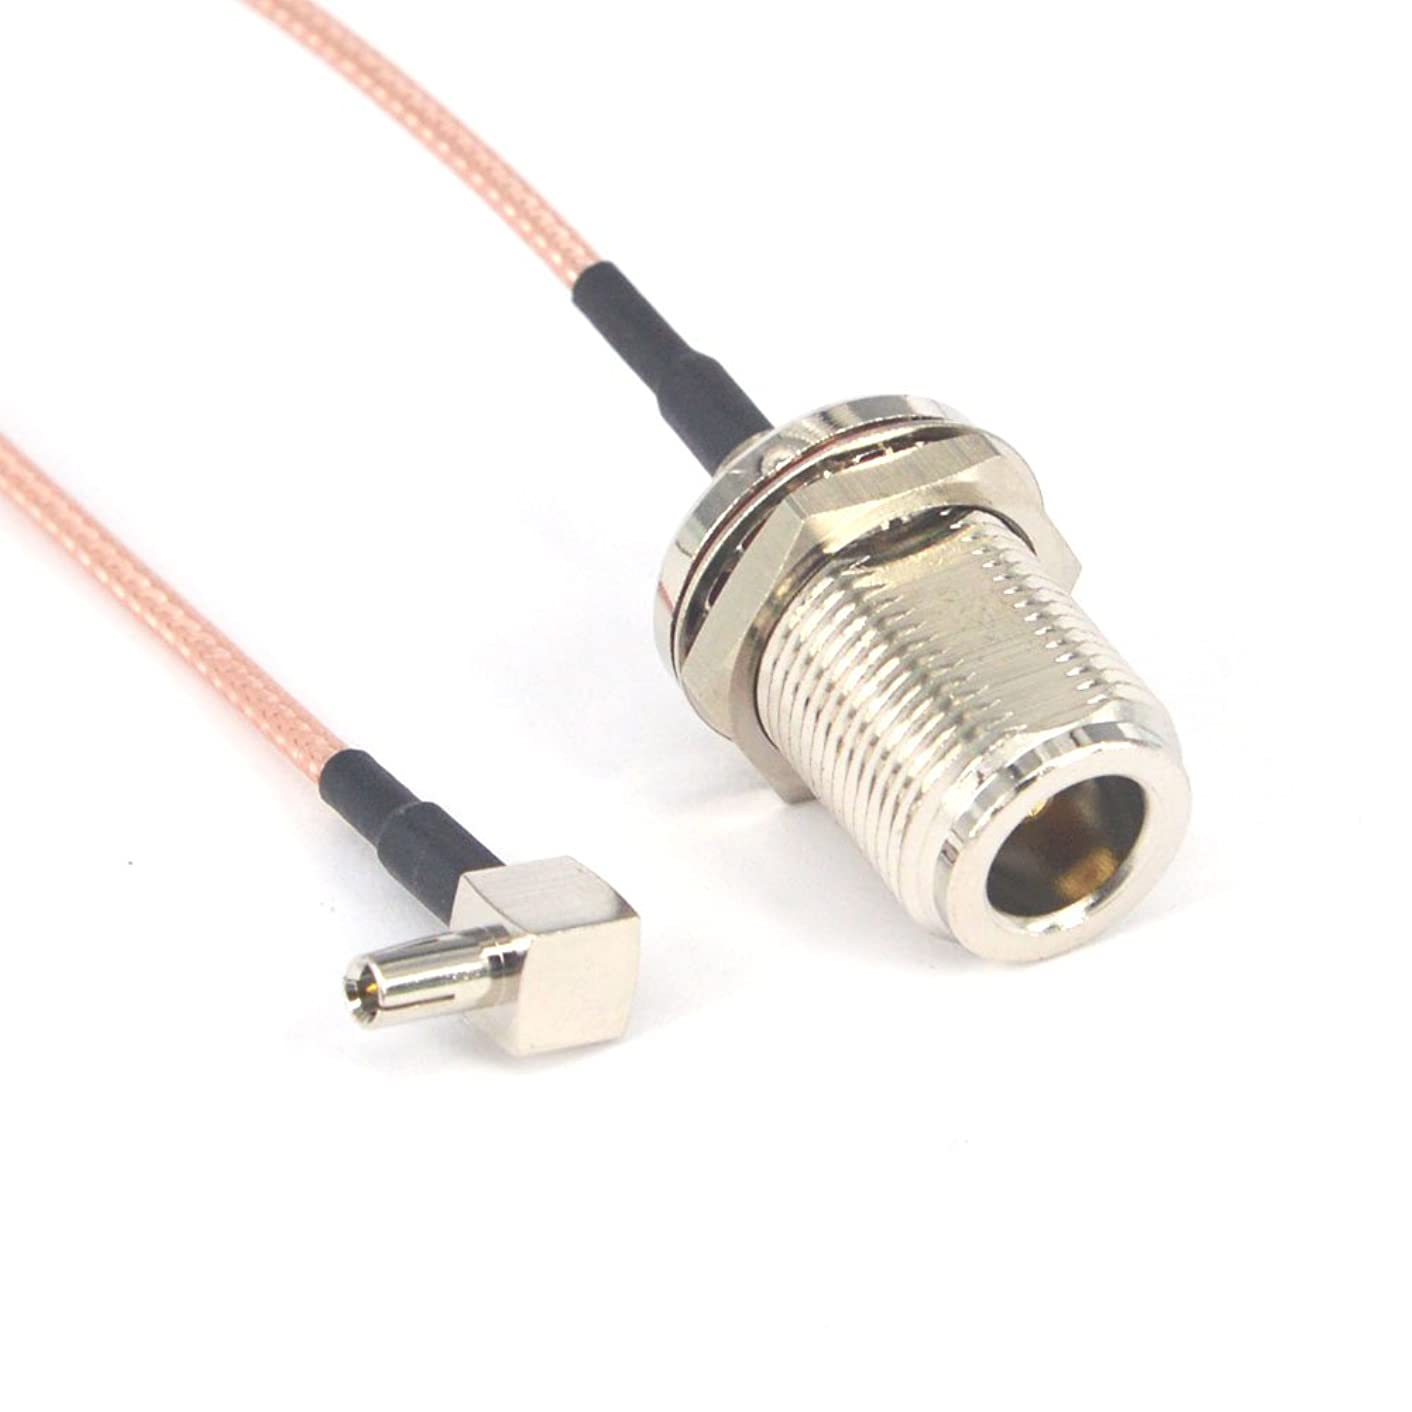 RF Coaxial N Female Bulkhead to TS9 Male Right Angle Connector USB Modem Adapter Extension Cable 6 inch